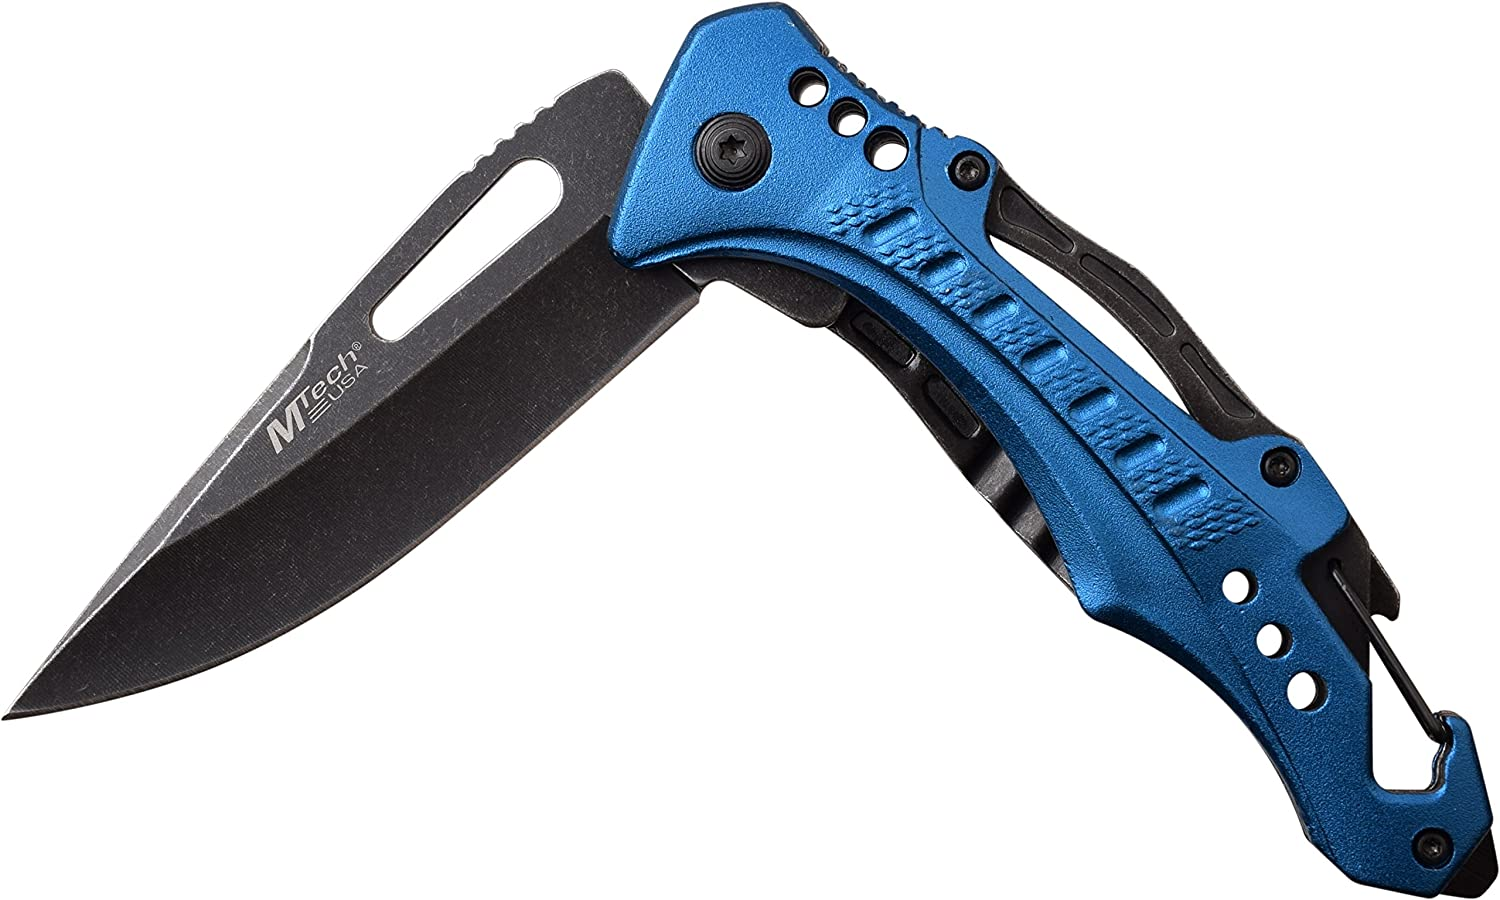 Blue//Silver MTech Plain Blade Tactical Hunting Spring Assisted Pocketknife